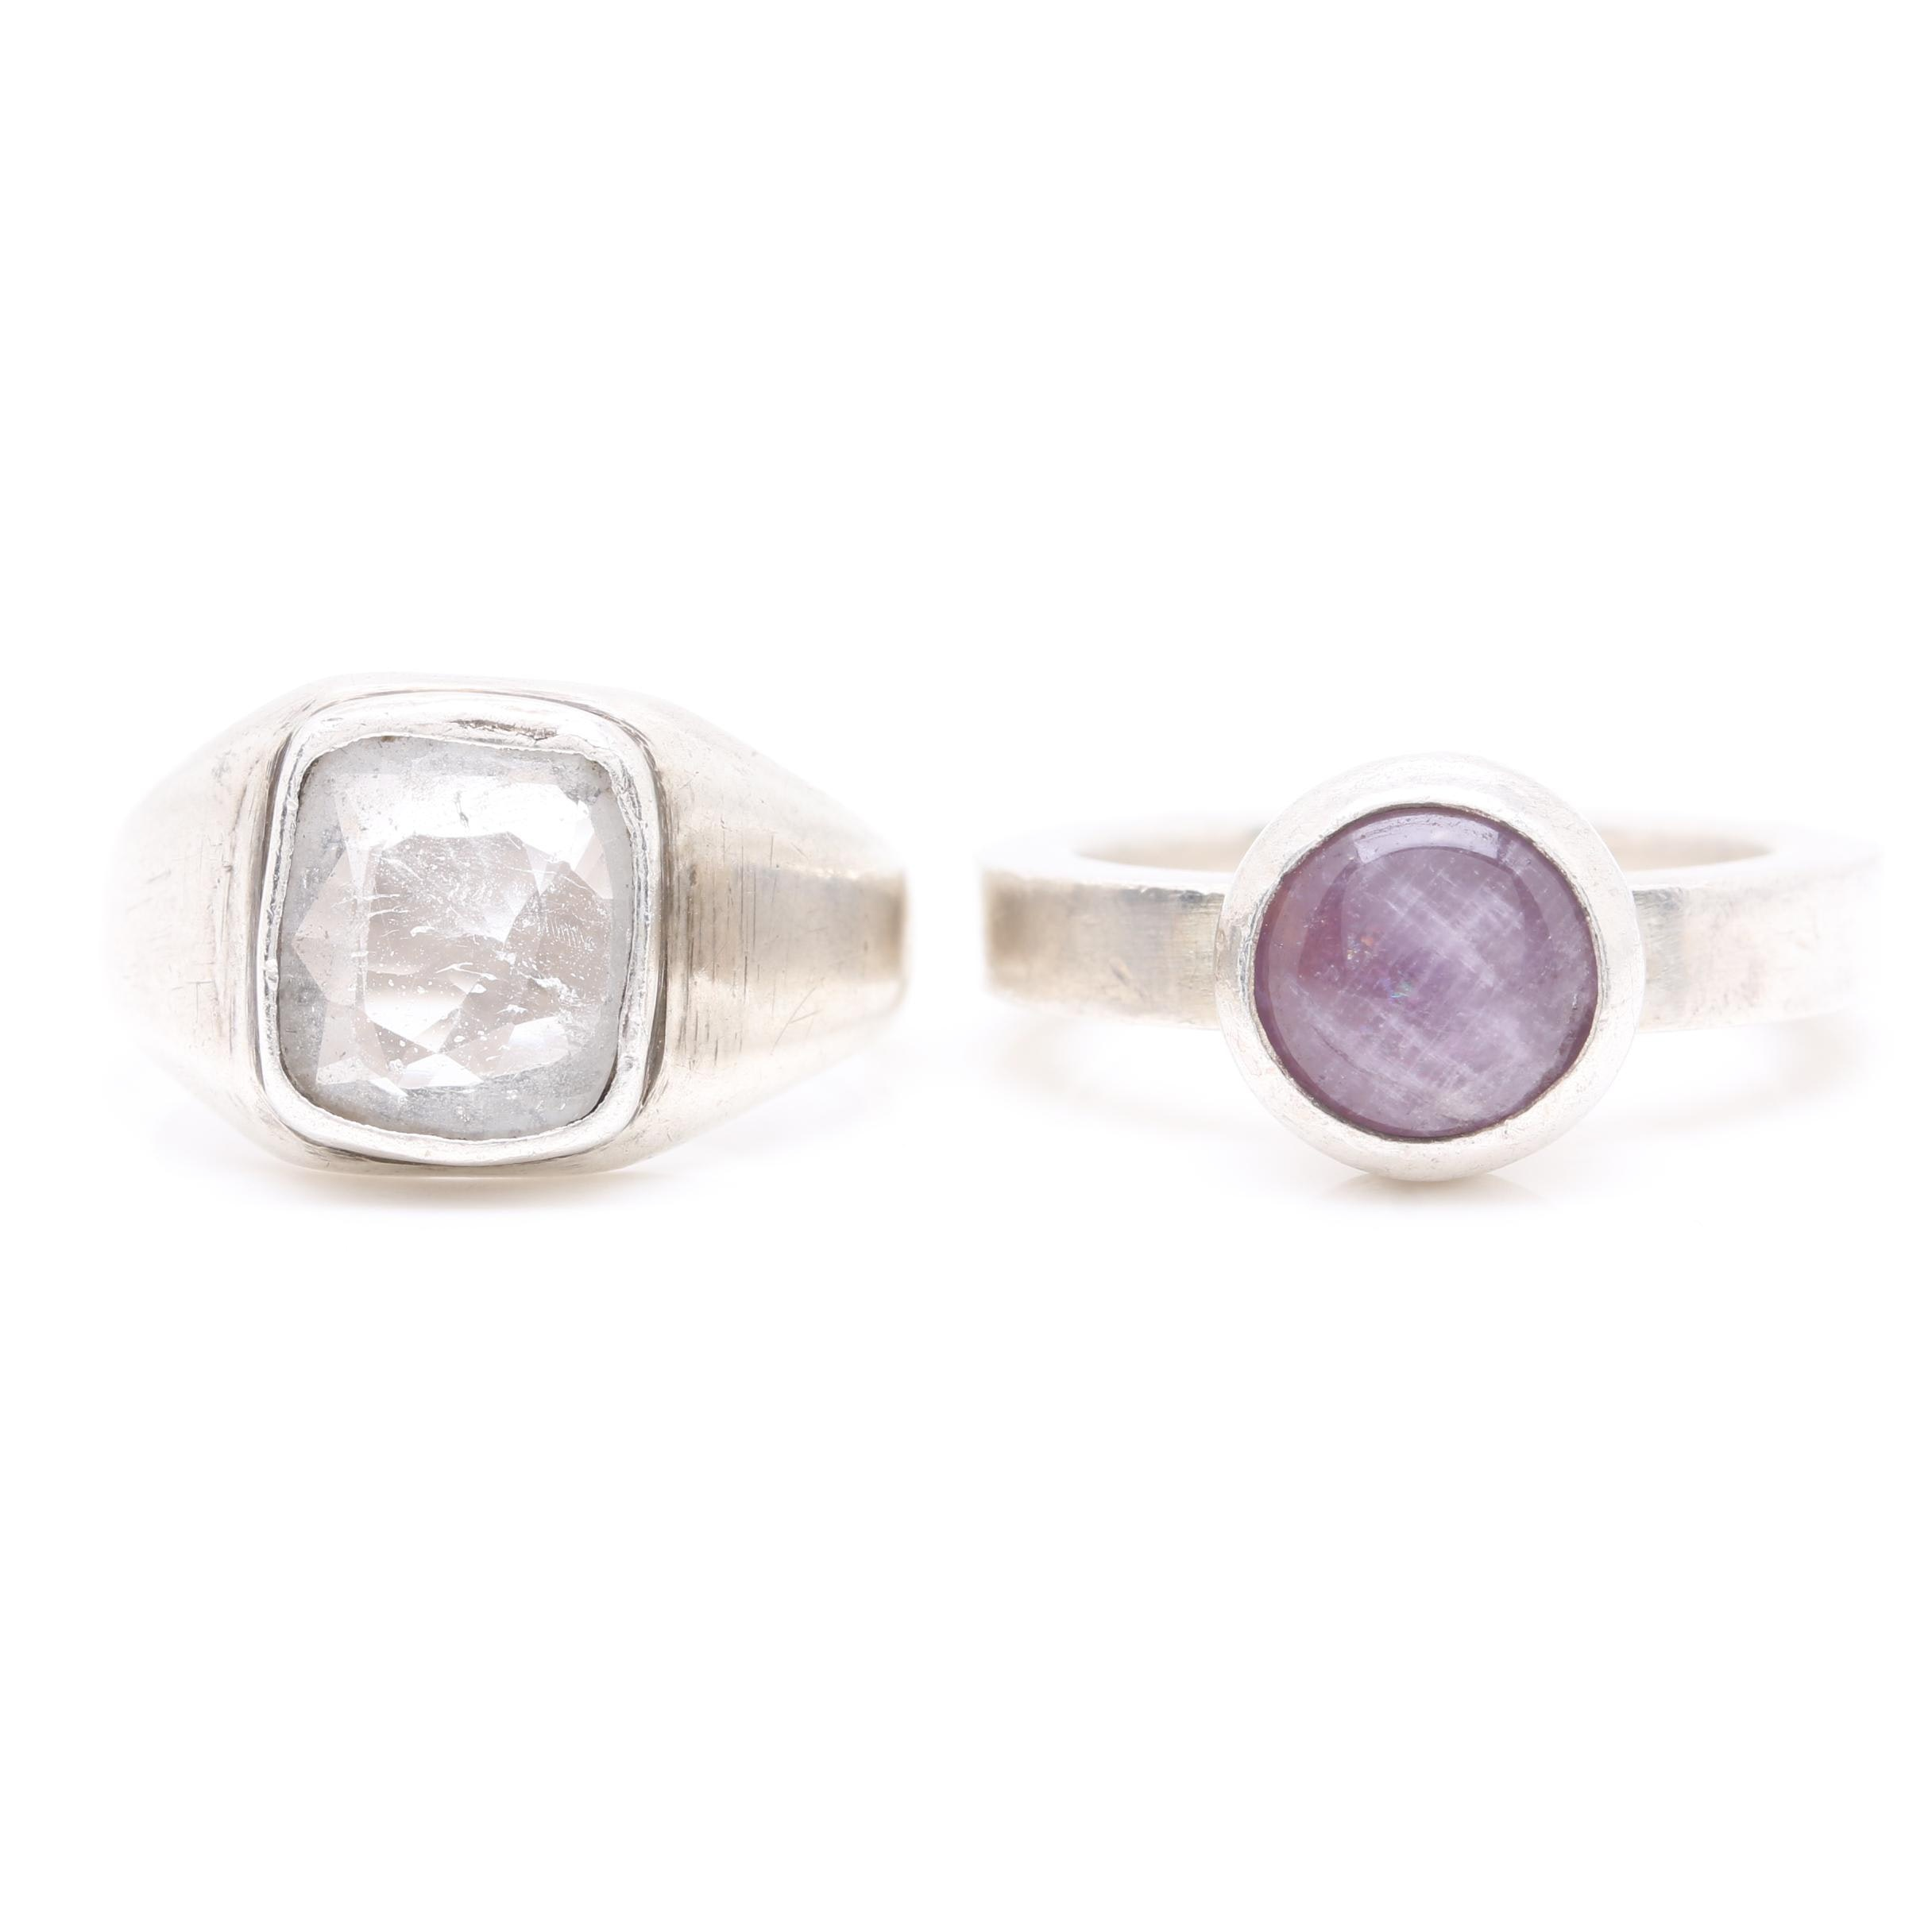 800 Silver and Sterling Silver Topaz and Amethyst Rings